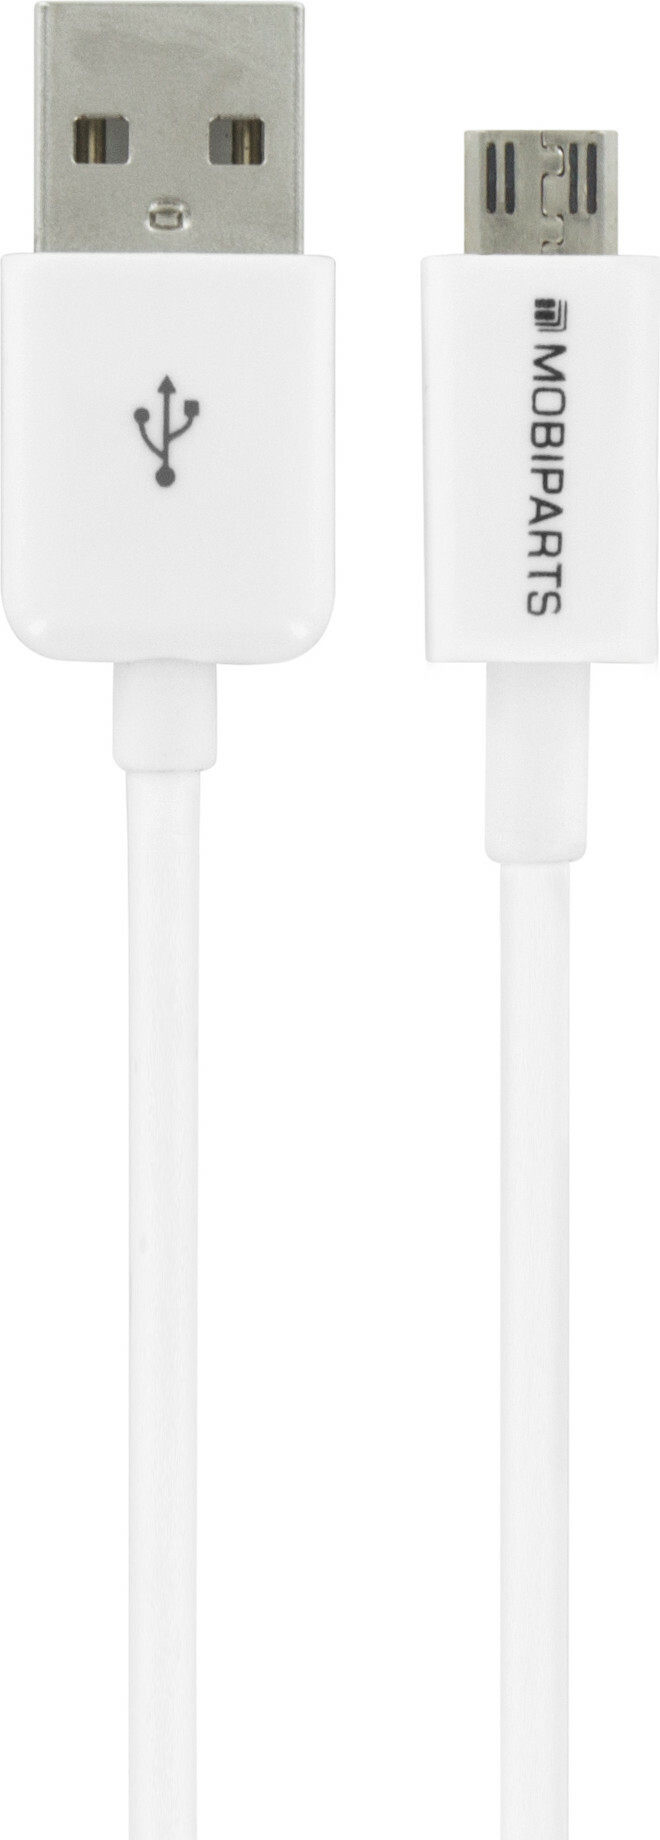 Mobiparts Micro USB to USB Cable 2.4A 3m White (Bulk)